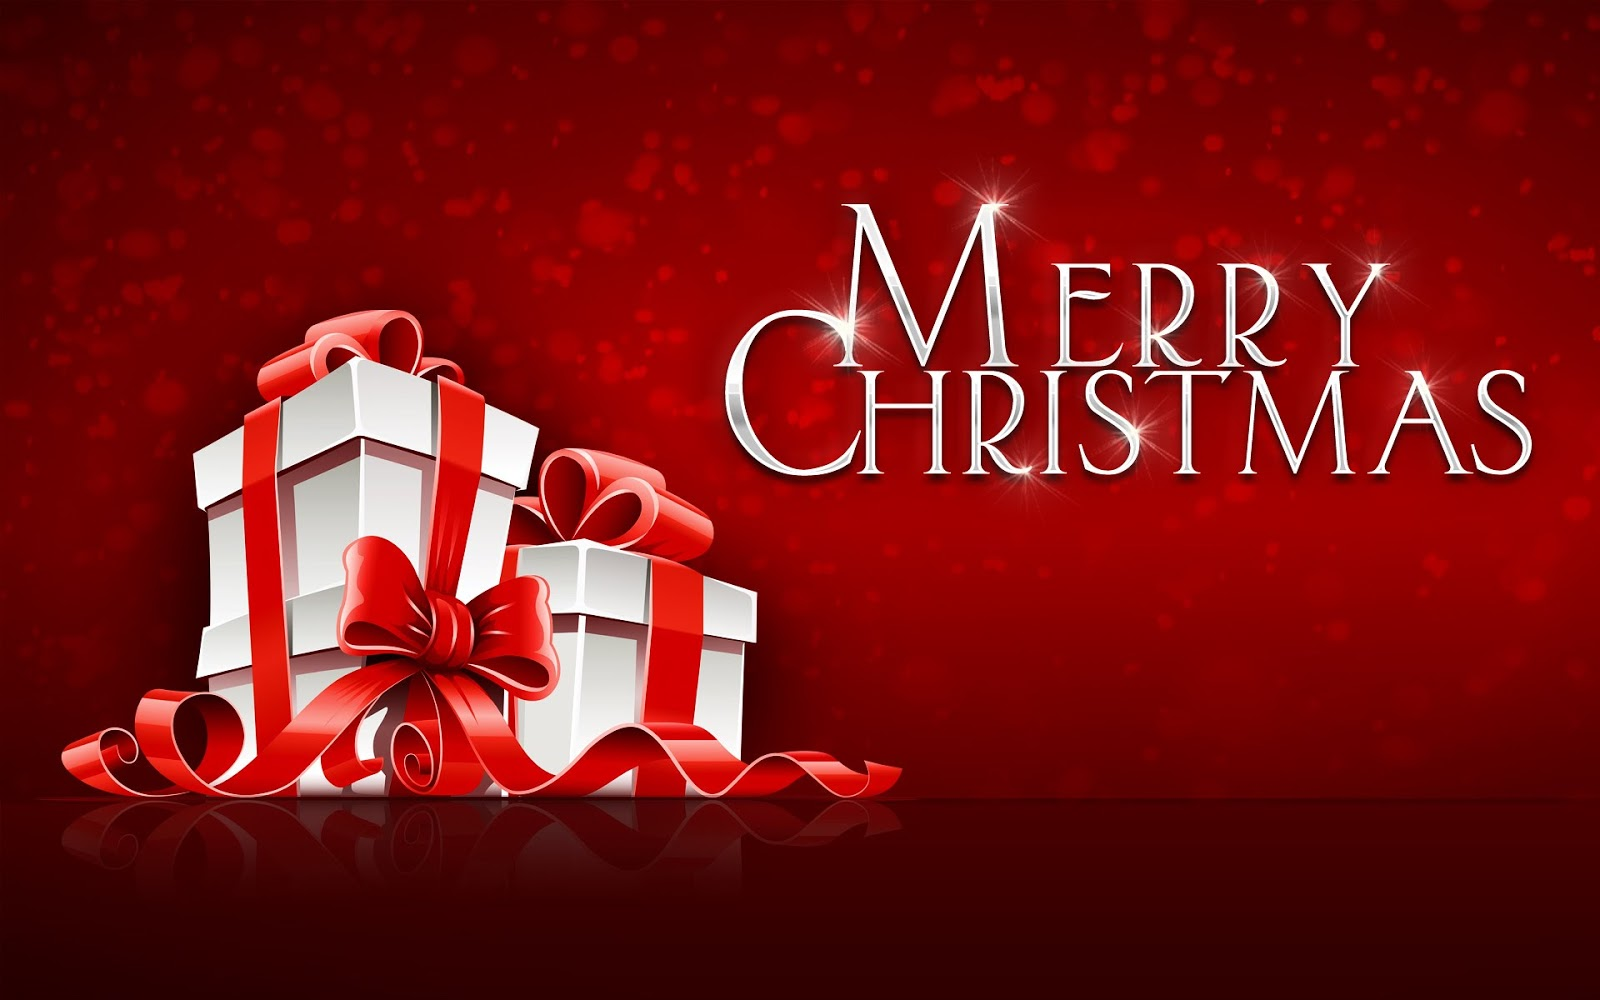 Best Merry Christmas HD Image For Free Download 2017